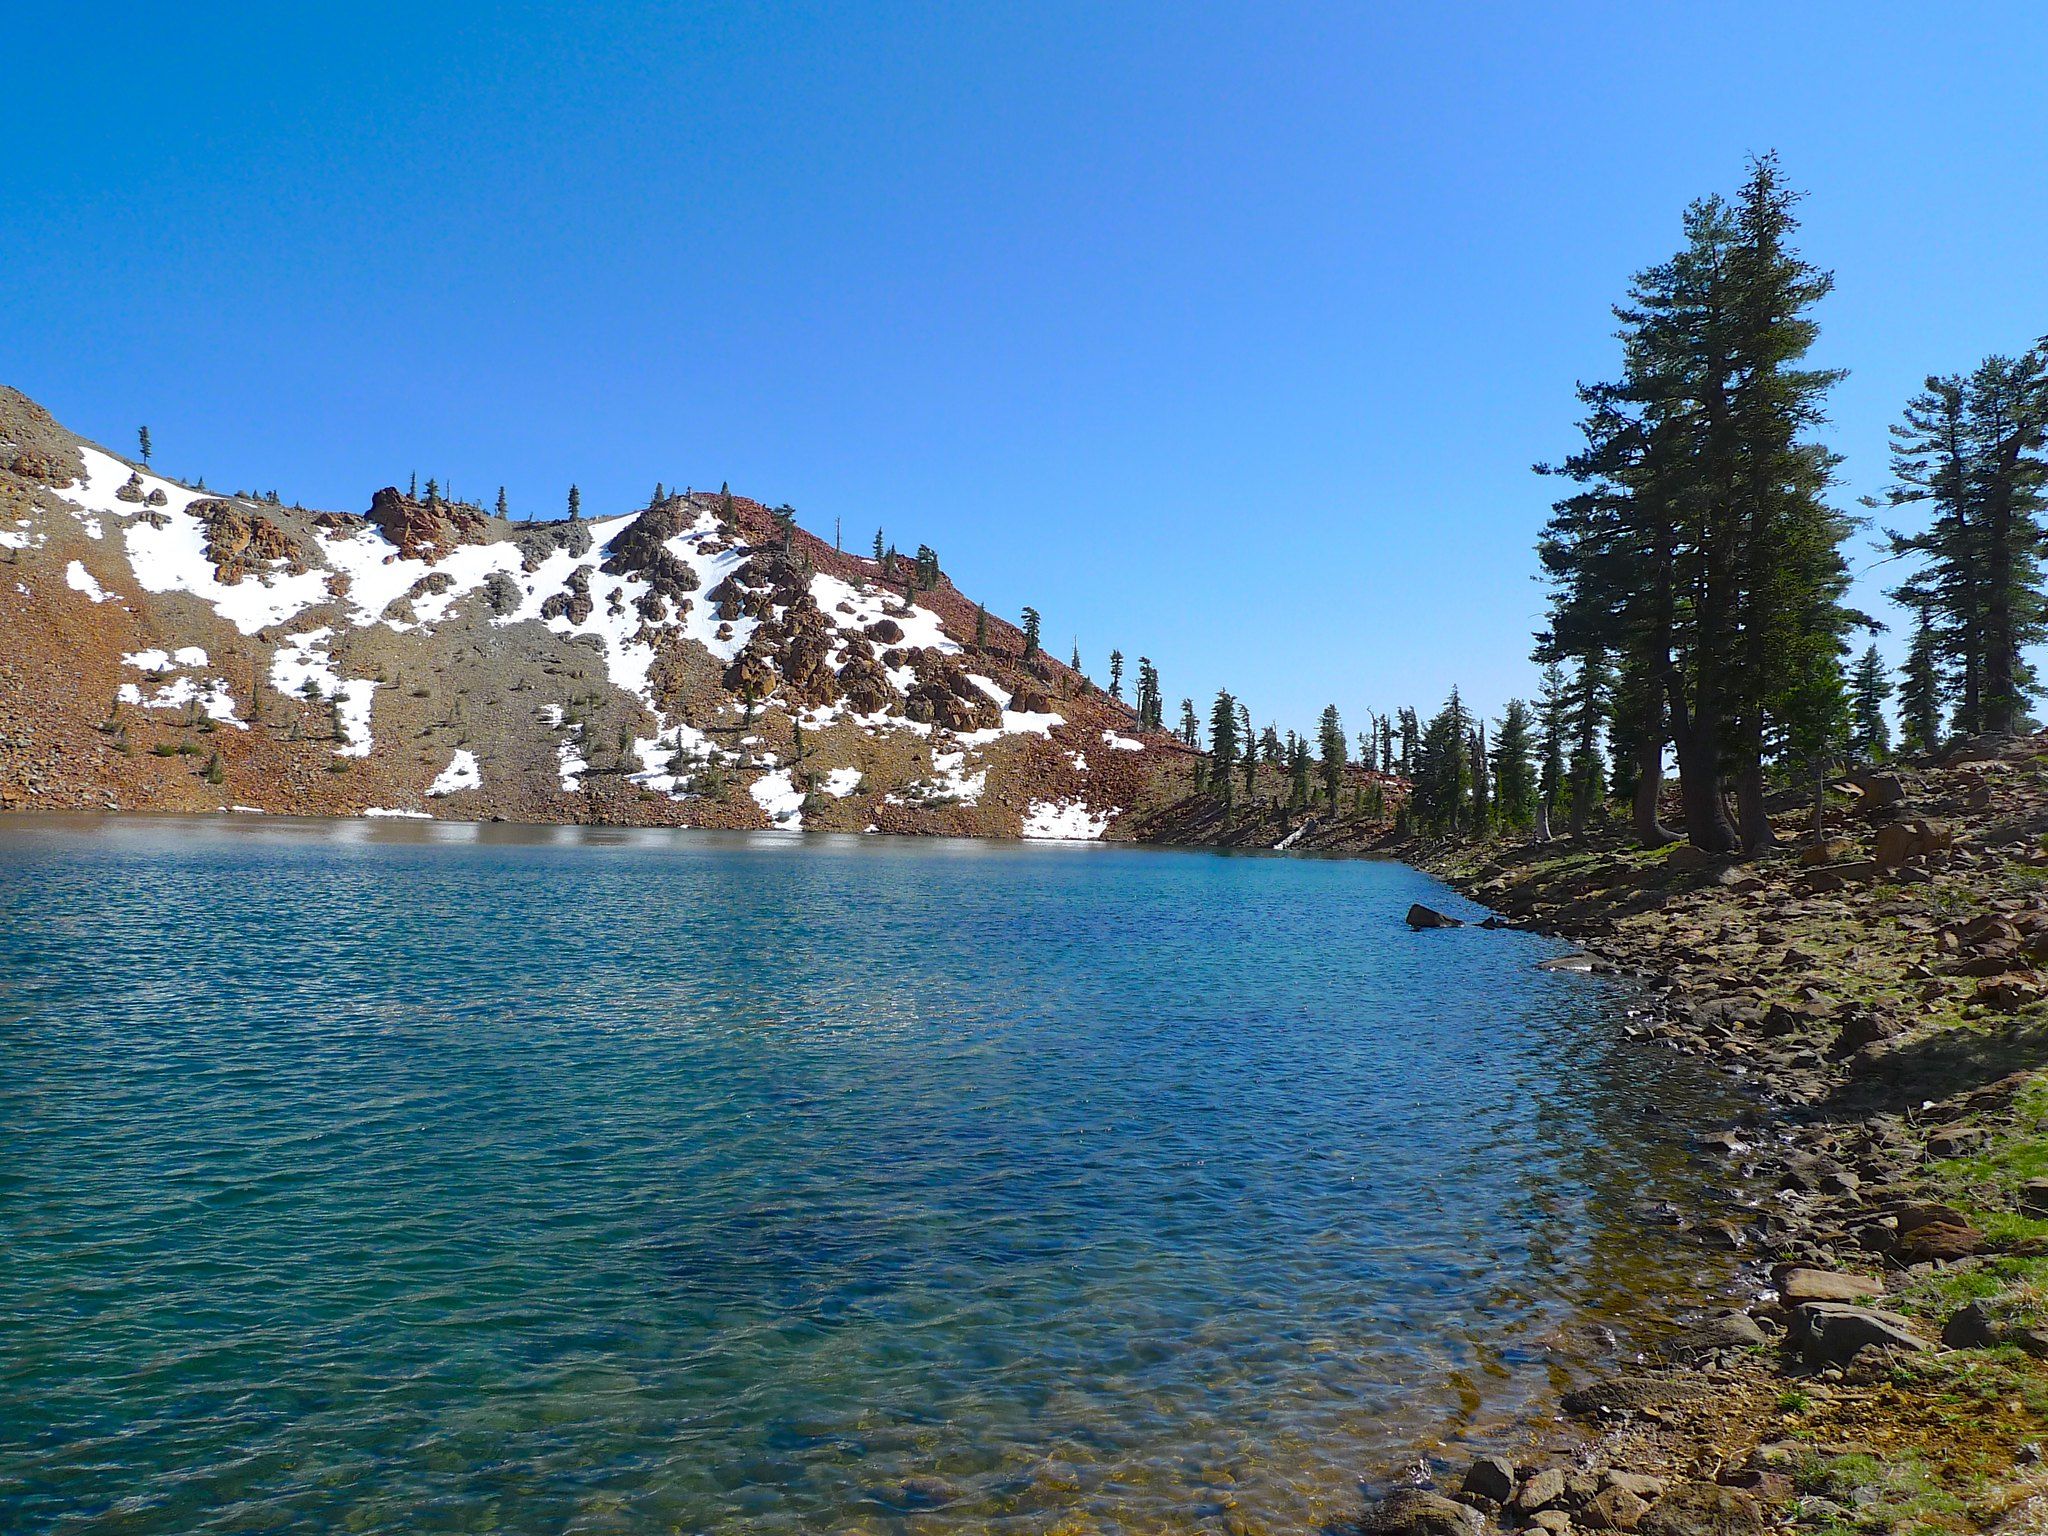 Summit Lake has beautiful clear azure water. Would be great for swimming later in the summer!